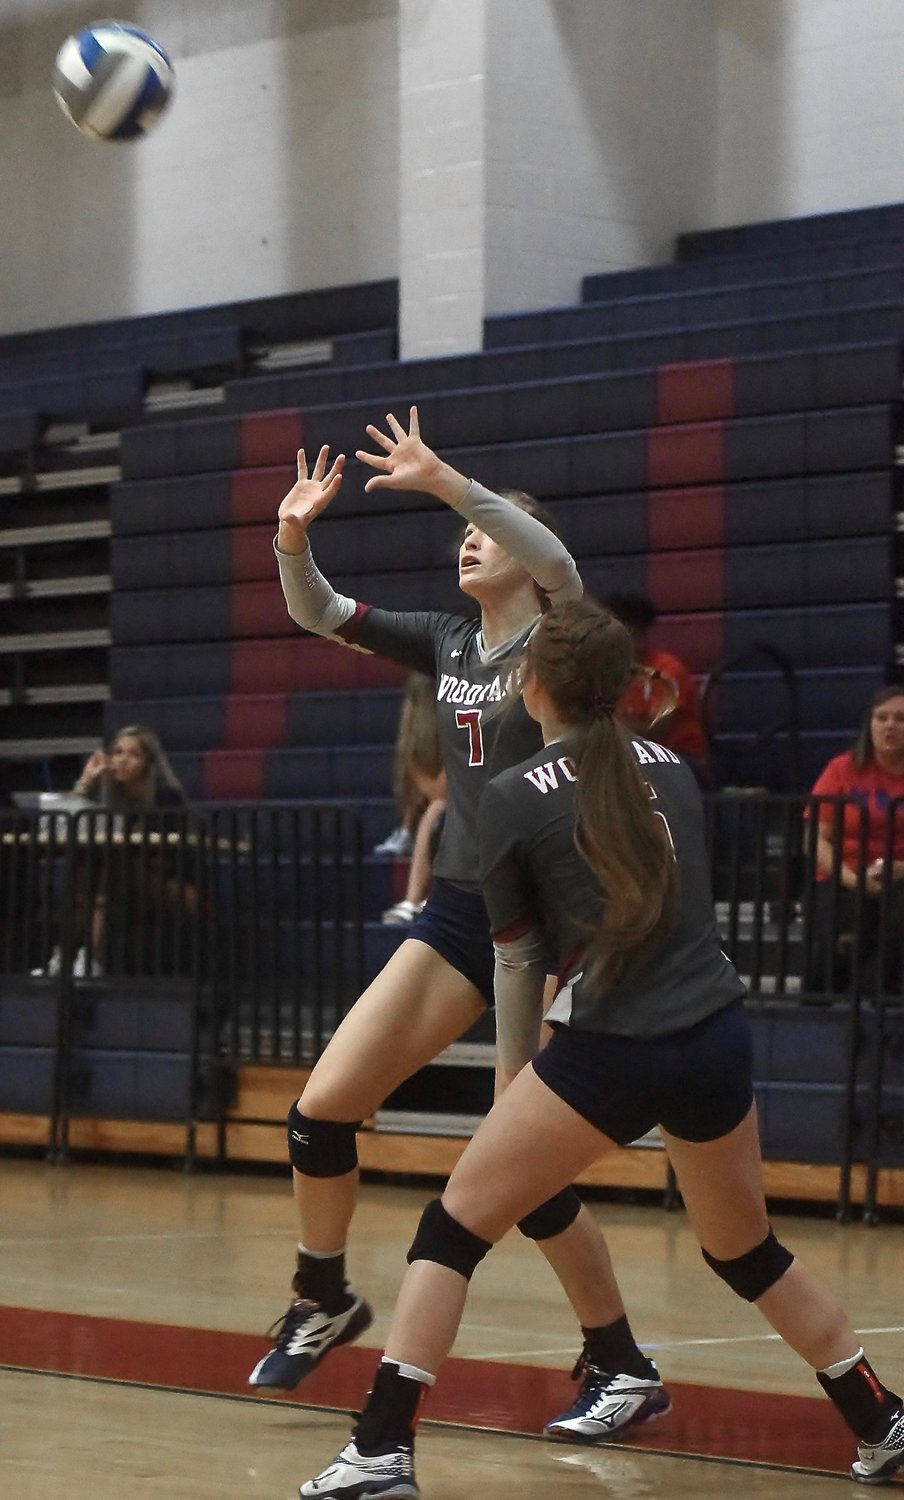 Woodland senior Grace Webb (7) sets the ball as teammate Emmalee Cigainero looks on during Tuesday's home match against Chattooga.